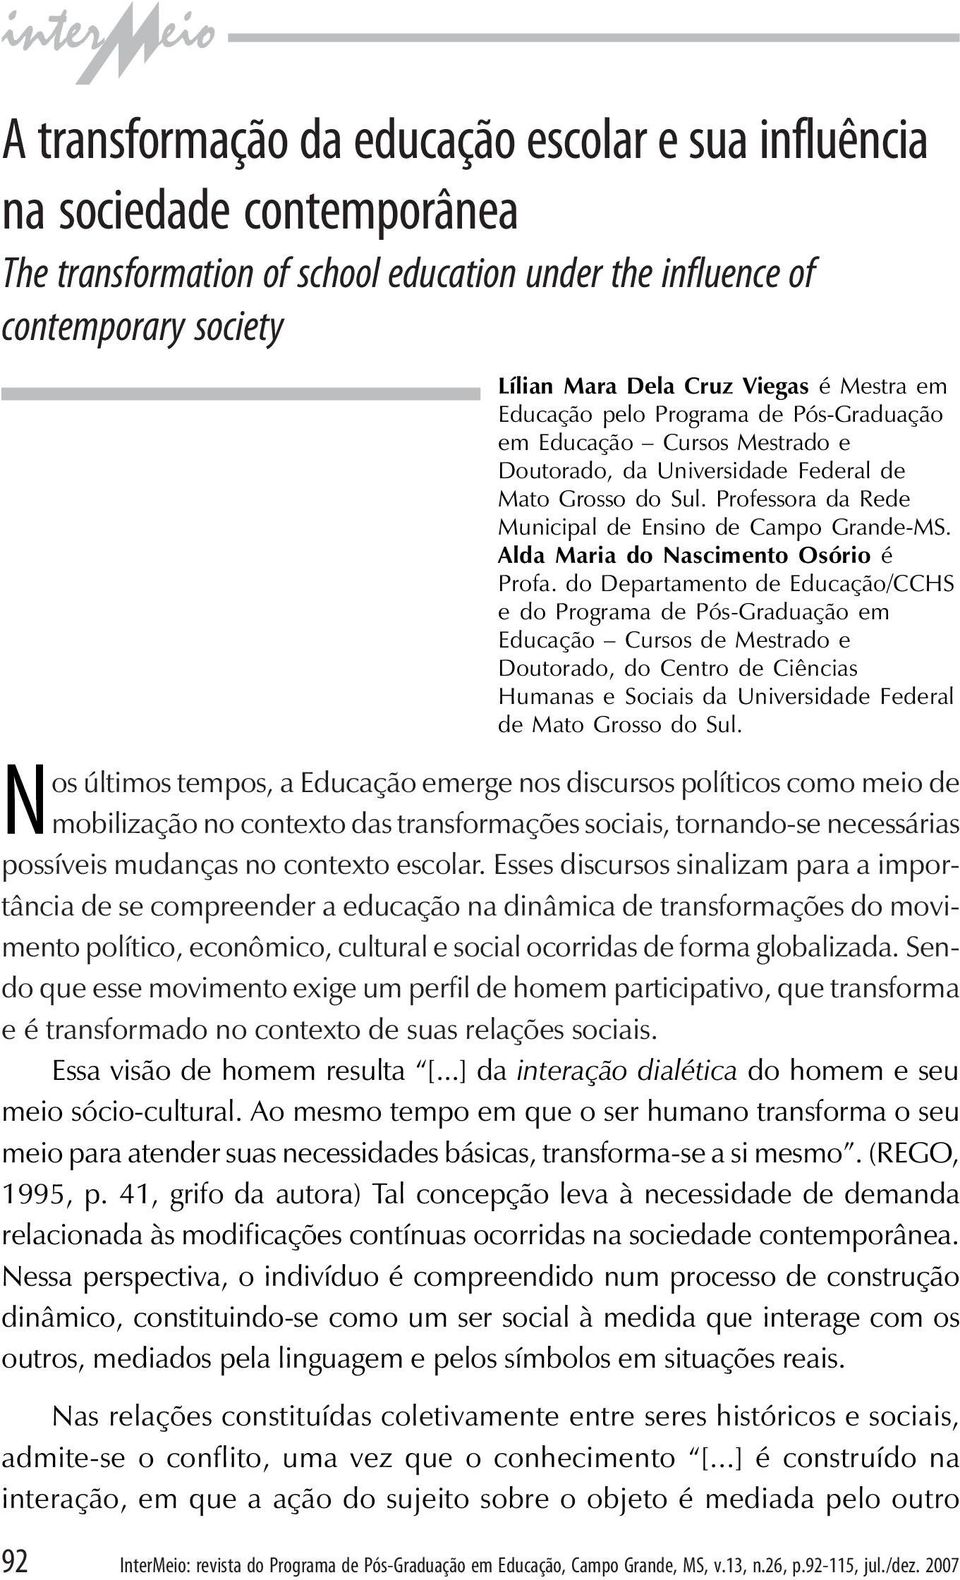 influence of contemporary society N 92 InterMeio: revista do Programa